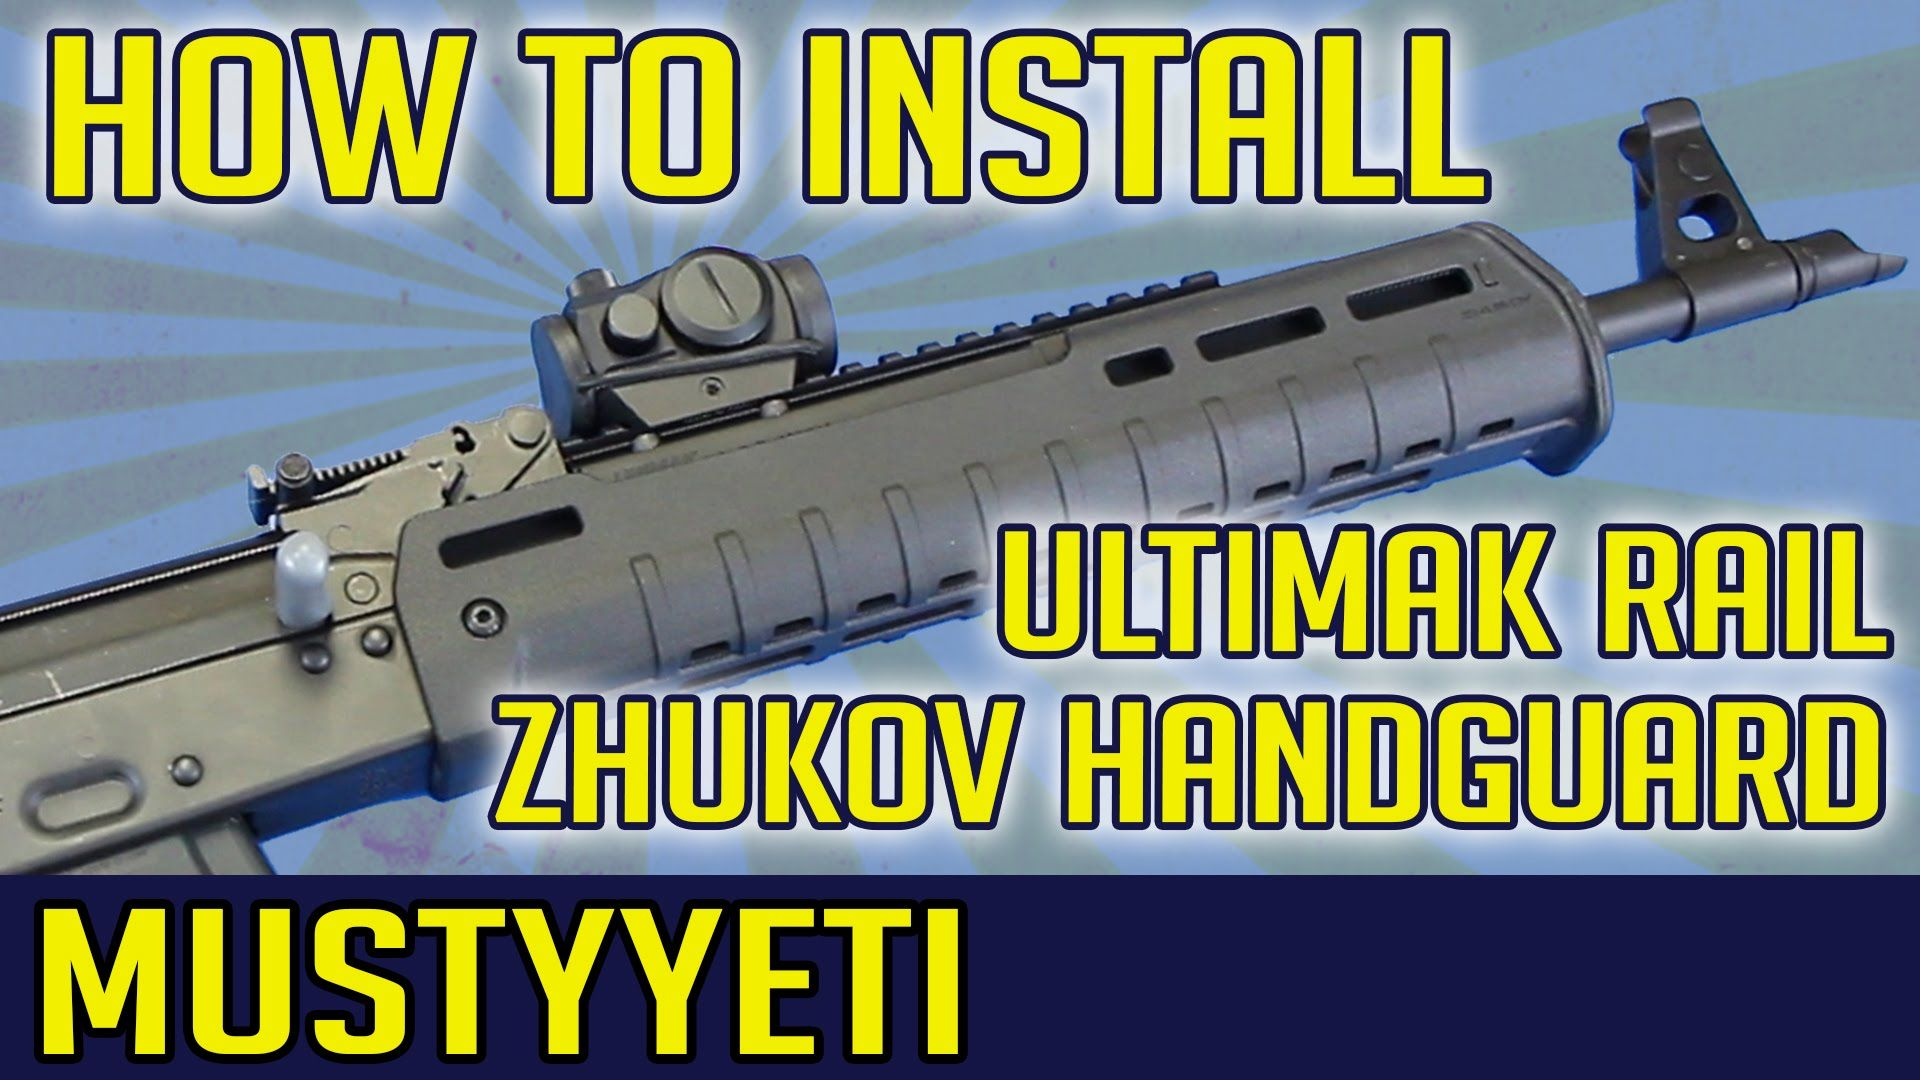 HOW TO INSTALL UltiMAK Rail with Magpul Zhukov Handguard